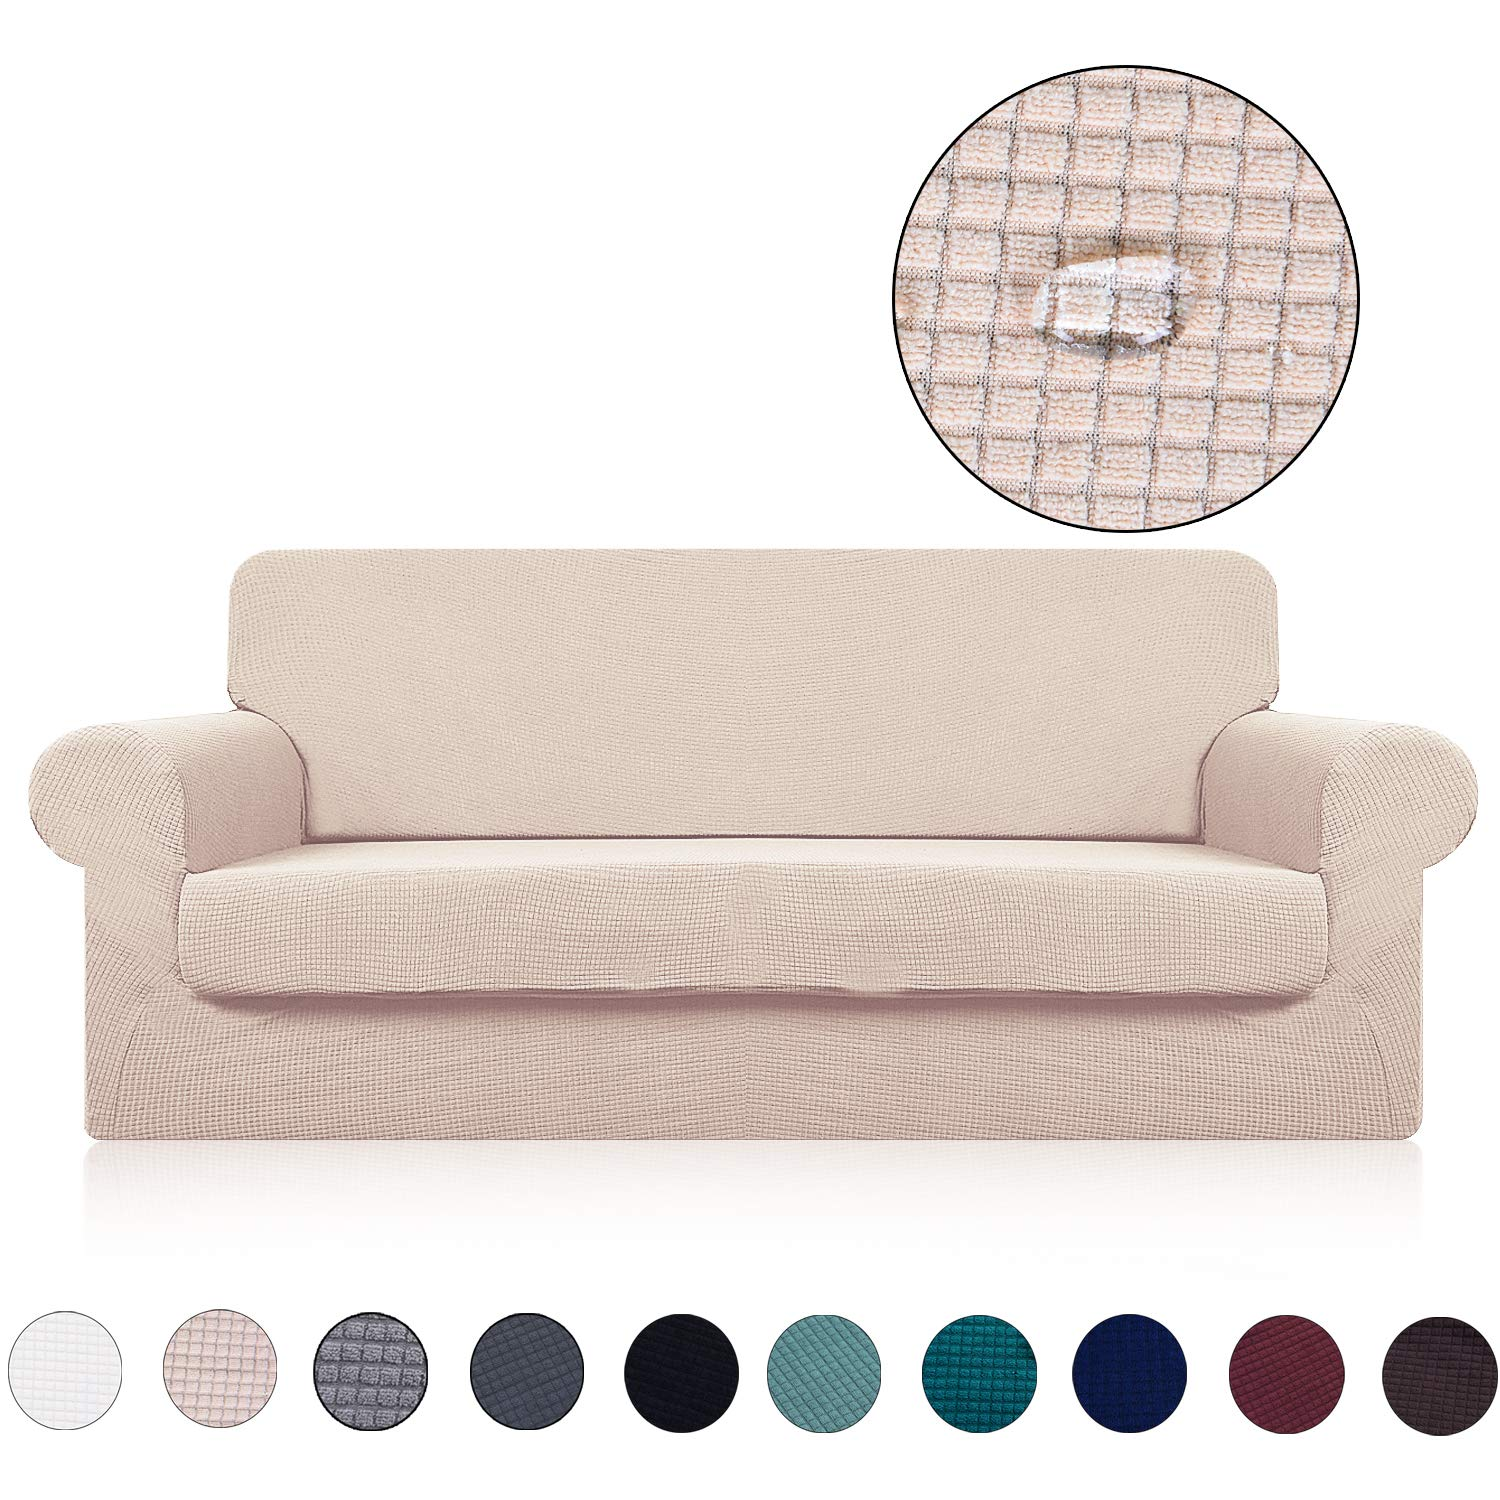 Sofa Cover with Separate Seat Cushion Cover(2 Pieces Set) - Water Repellent,Knitted Jacquard,High Stretch - Living Room Couch Slipcover/Protector/Shield for Dog Cat Pets(3 Seater Sofa,Beige)